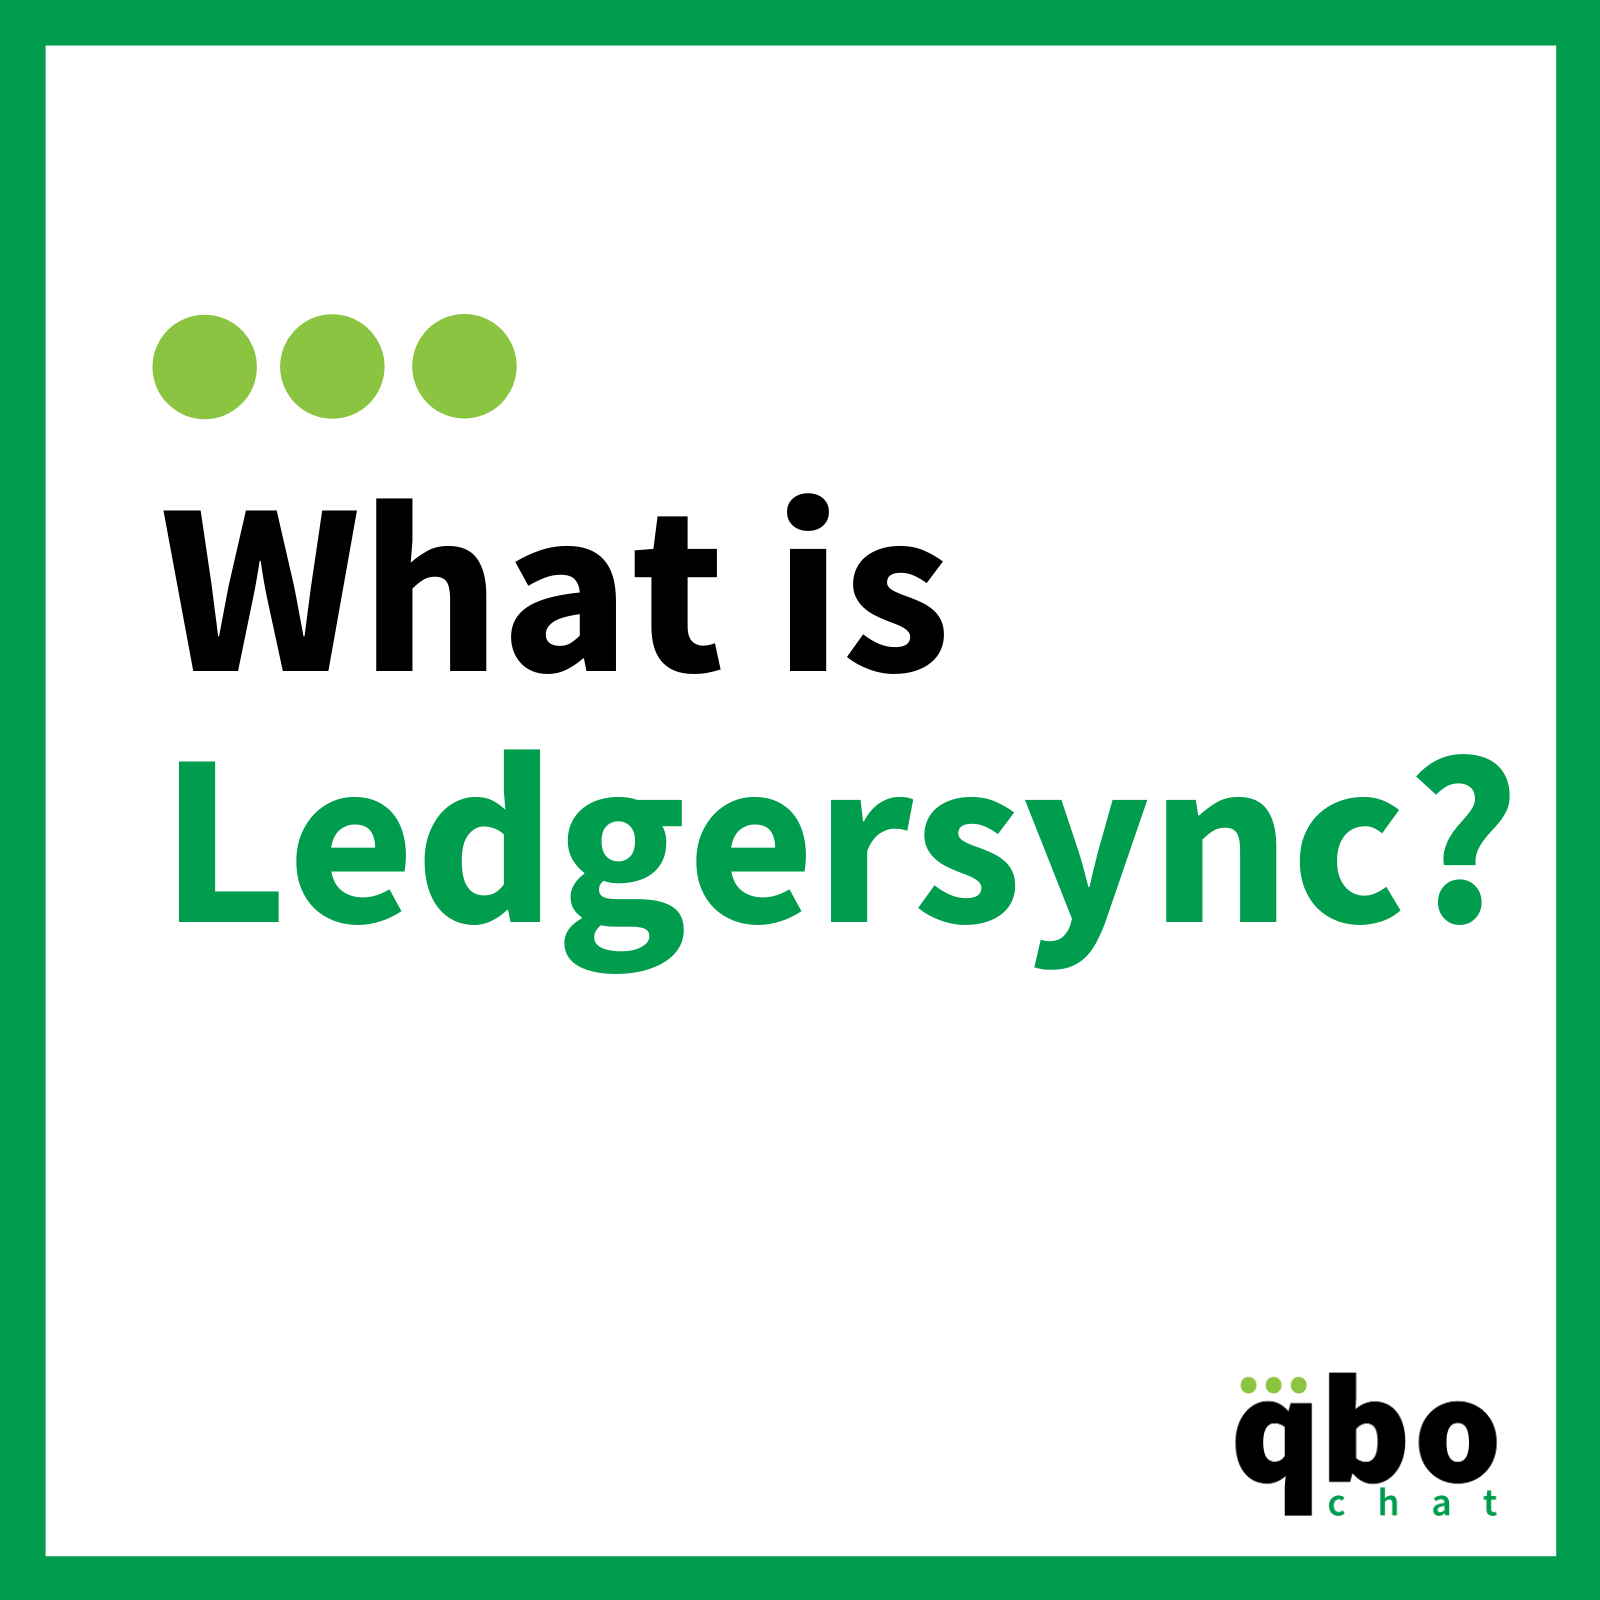 What is Ledgersync-